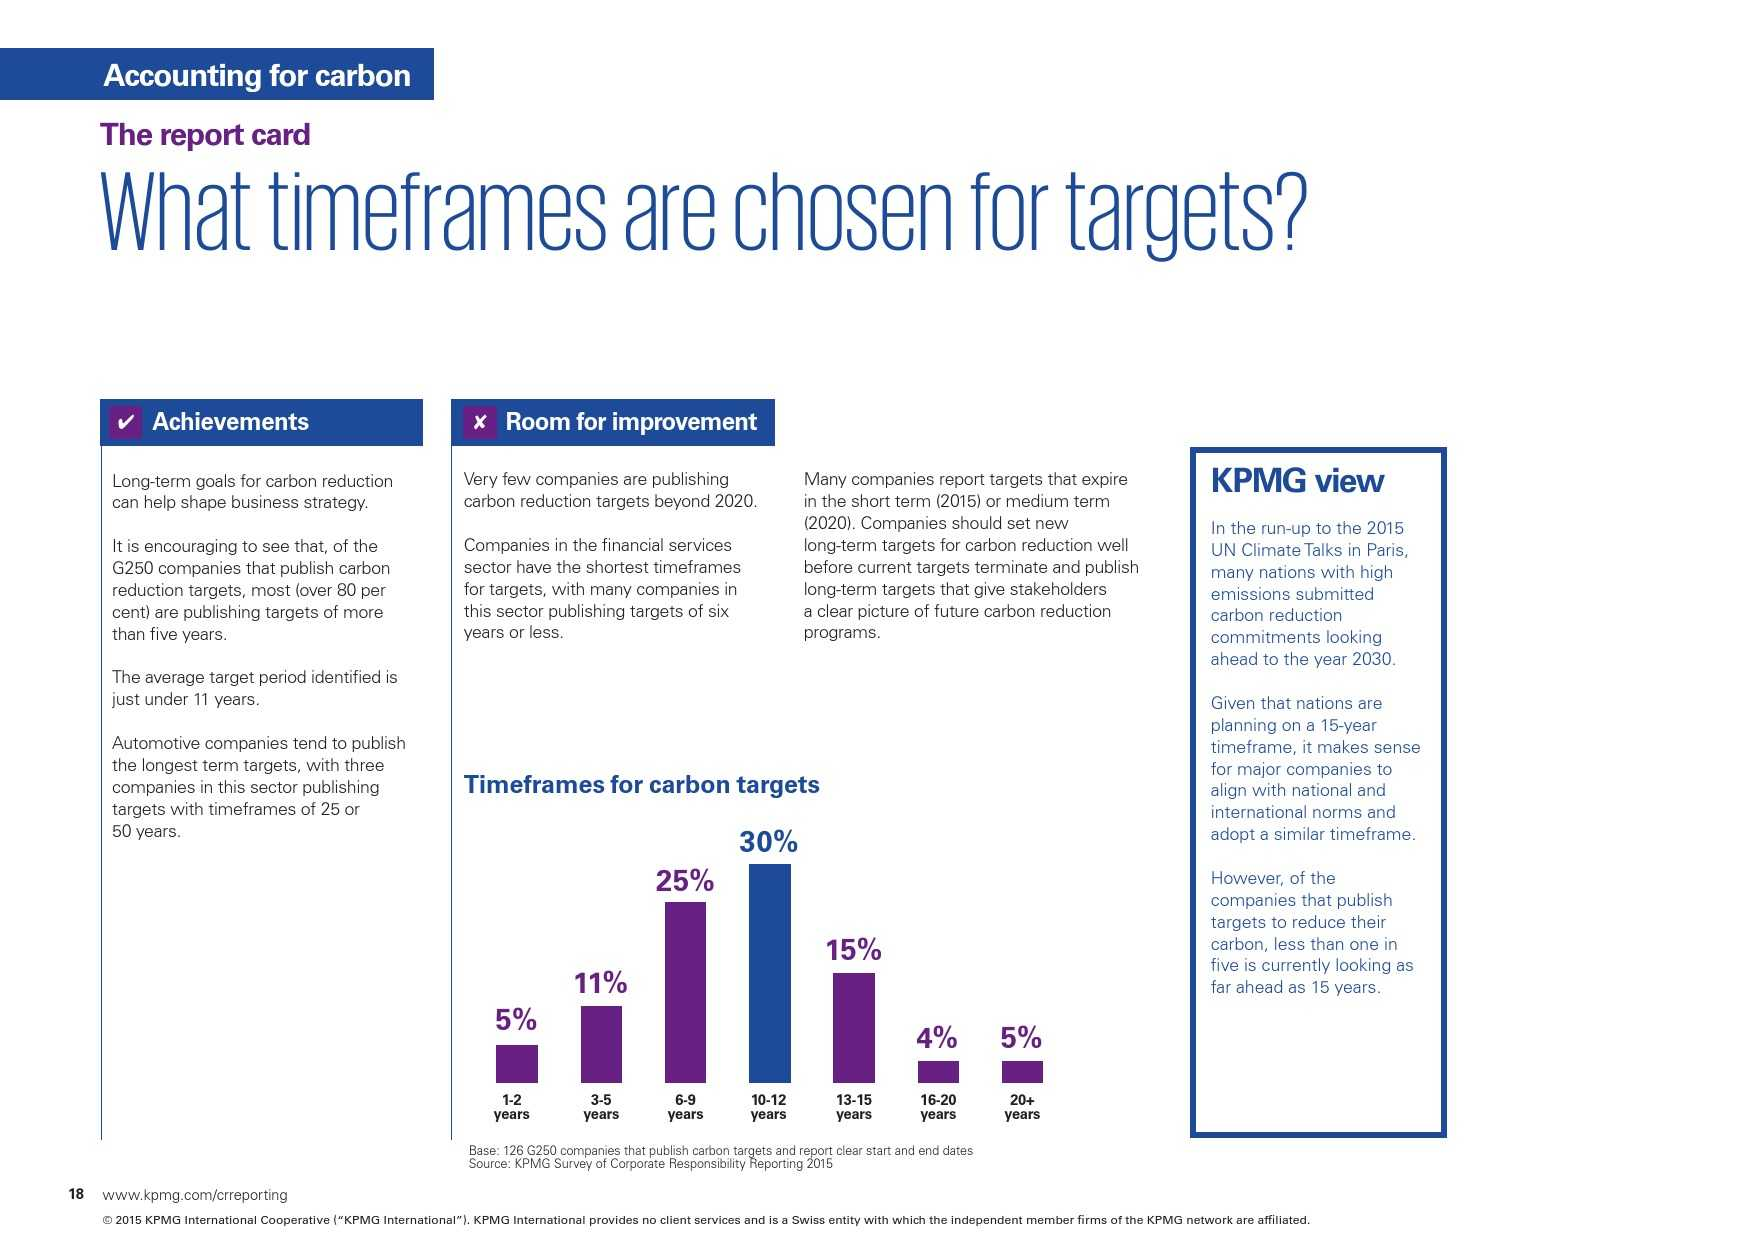 kpmg-international-survey-of-corporate-responsibility-reporting-2015_000018